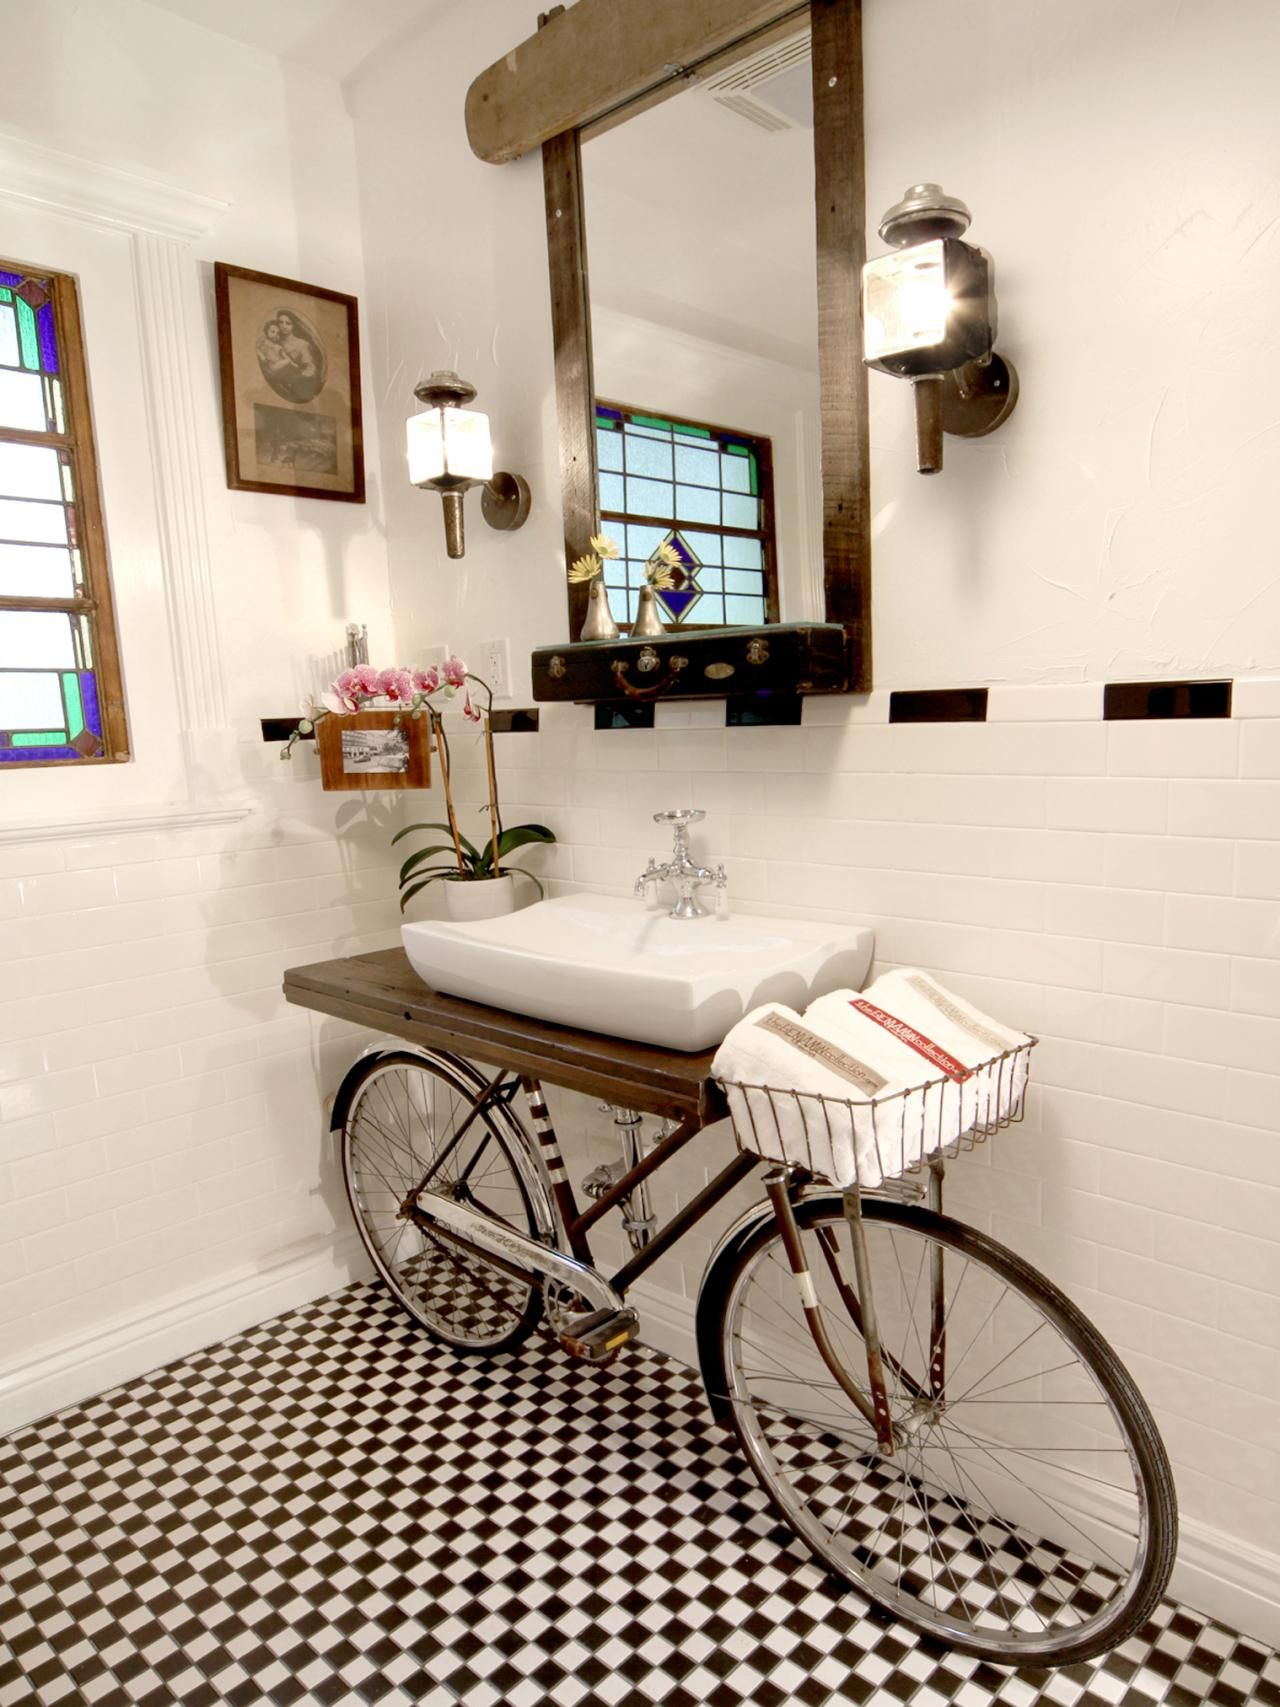 20 Upcycled and One-of-a-Kind Bathroom Vanities | Rooms for ...